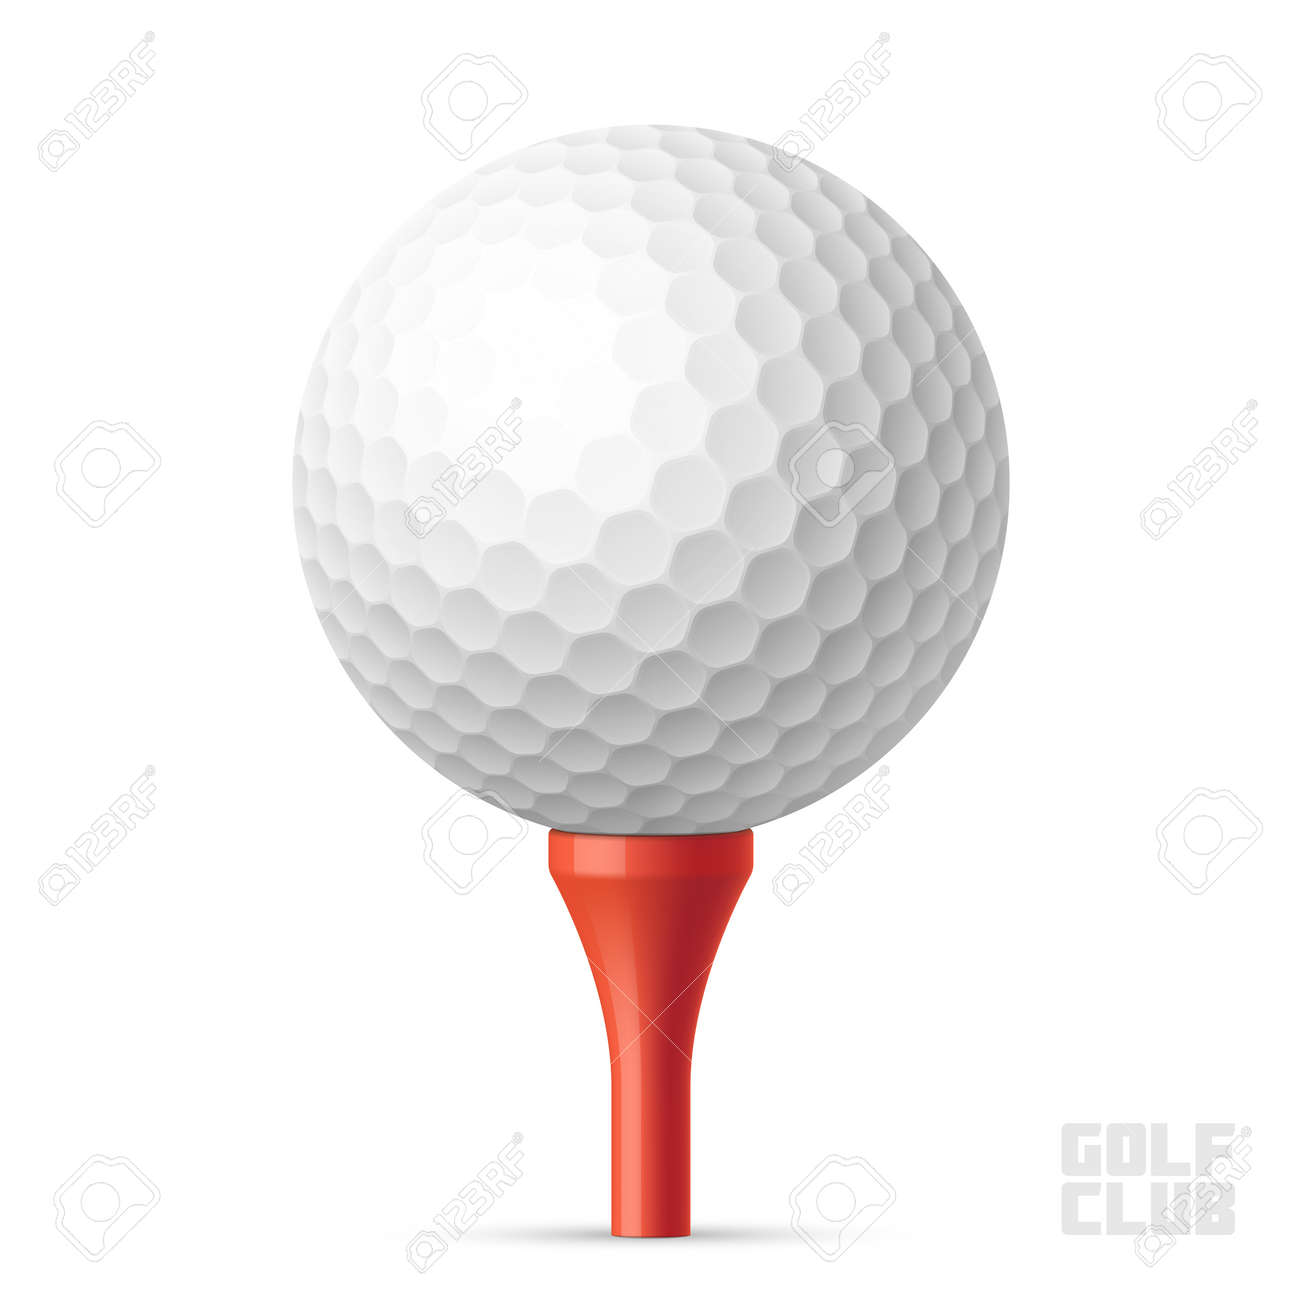 6 703 golf tee stock vector illustration and royalty free golf tee rh 123rf com golf ball tee clip art golf tee clip art free